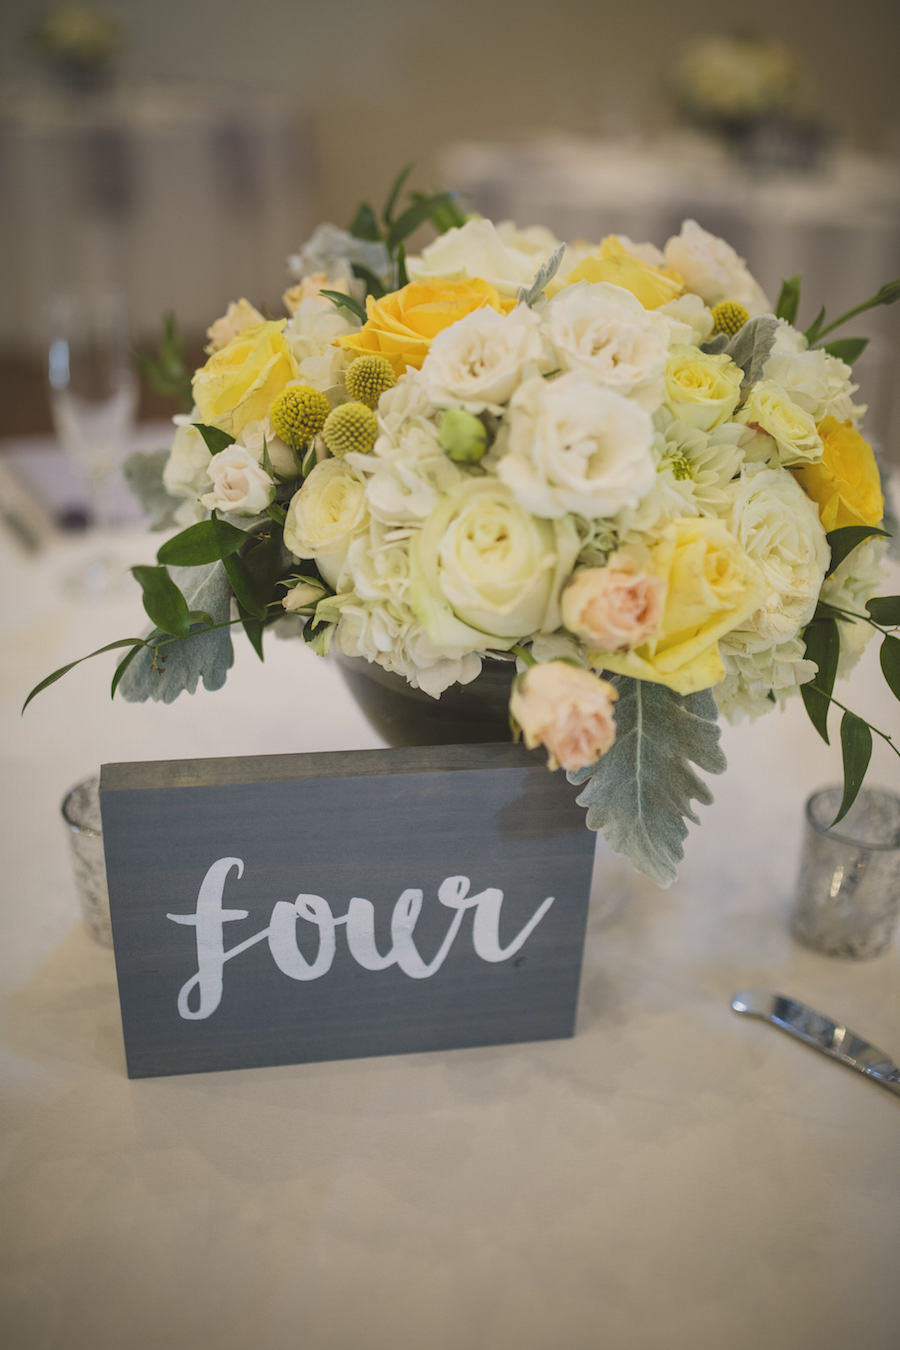 Rustic Ivory and Yellow Wedding Centerpieces in Gray Vase with Wooden Table Number   Andrea Layne Floral Design Sarasota FL Wedding Florist